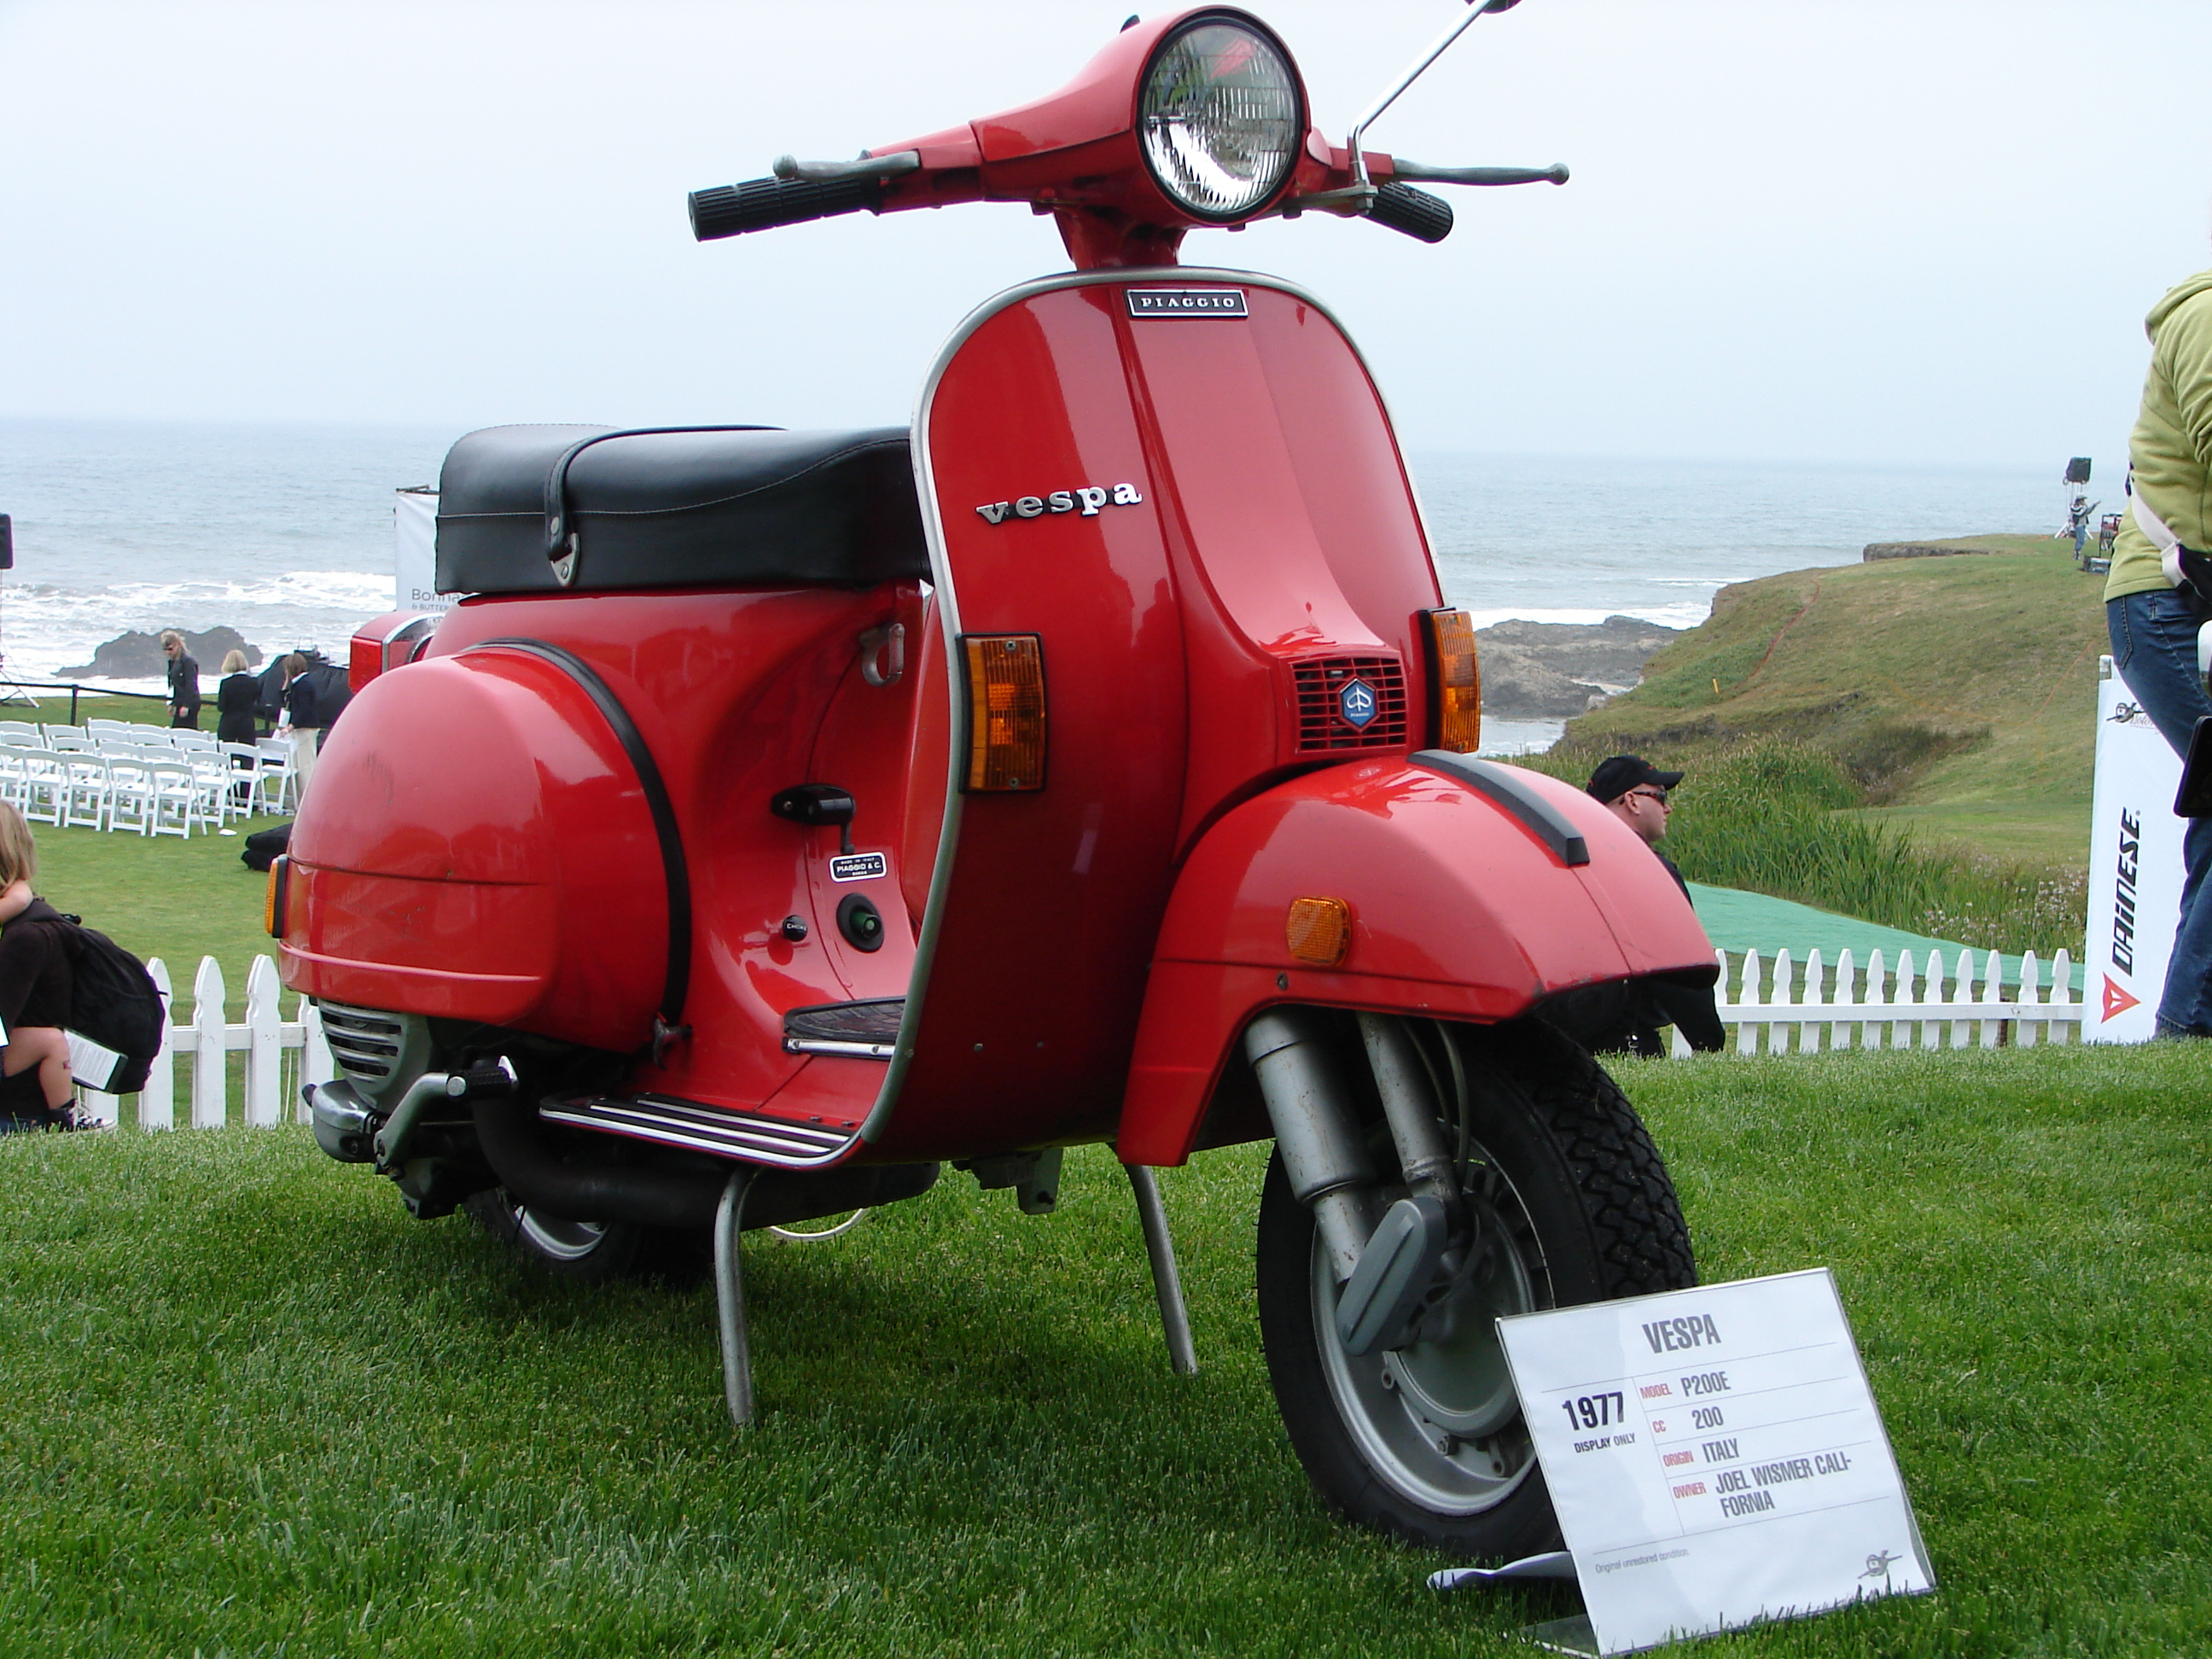 Welcome to the official Vespa website